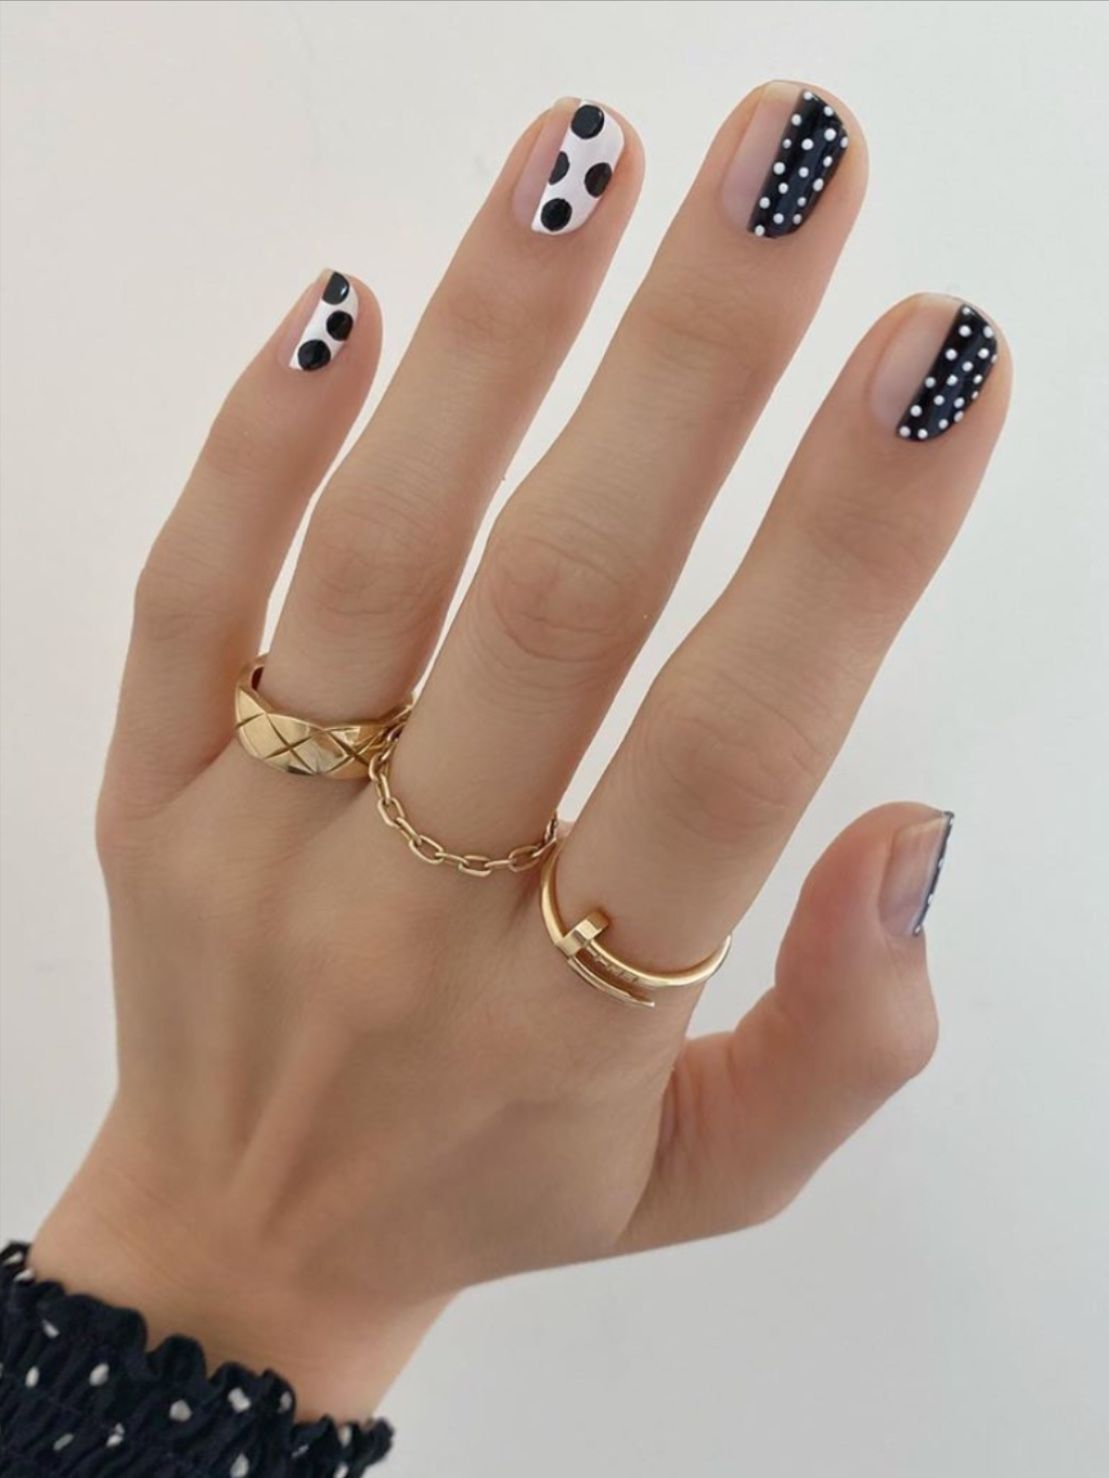 Every 2020 Nail Trend That Matters, According To Experts